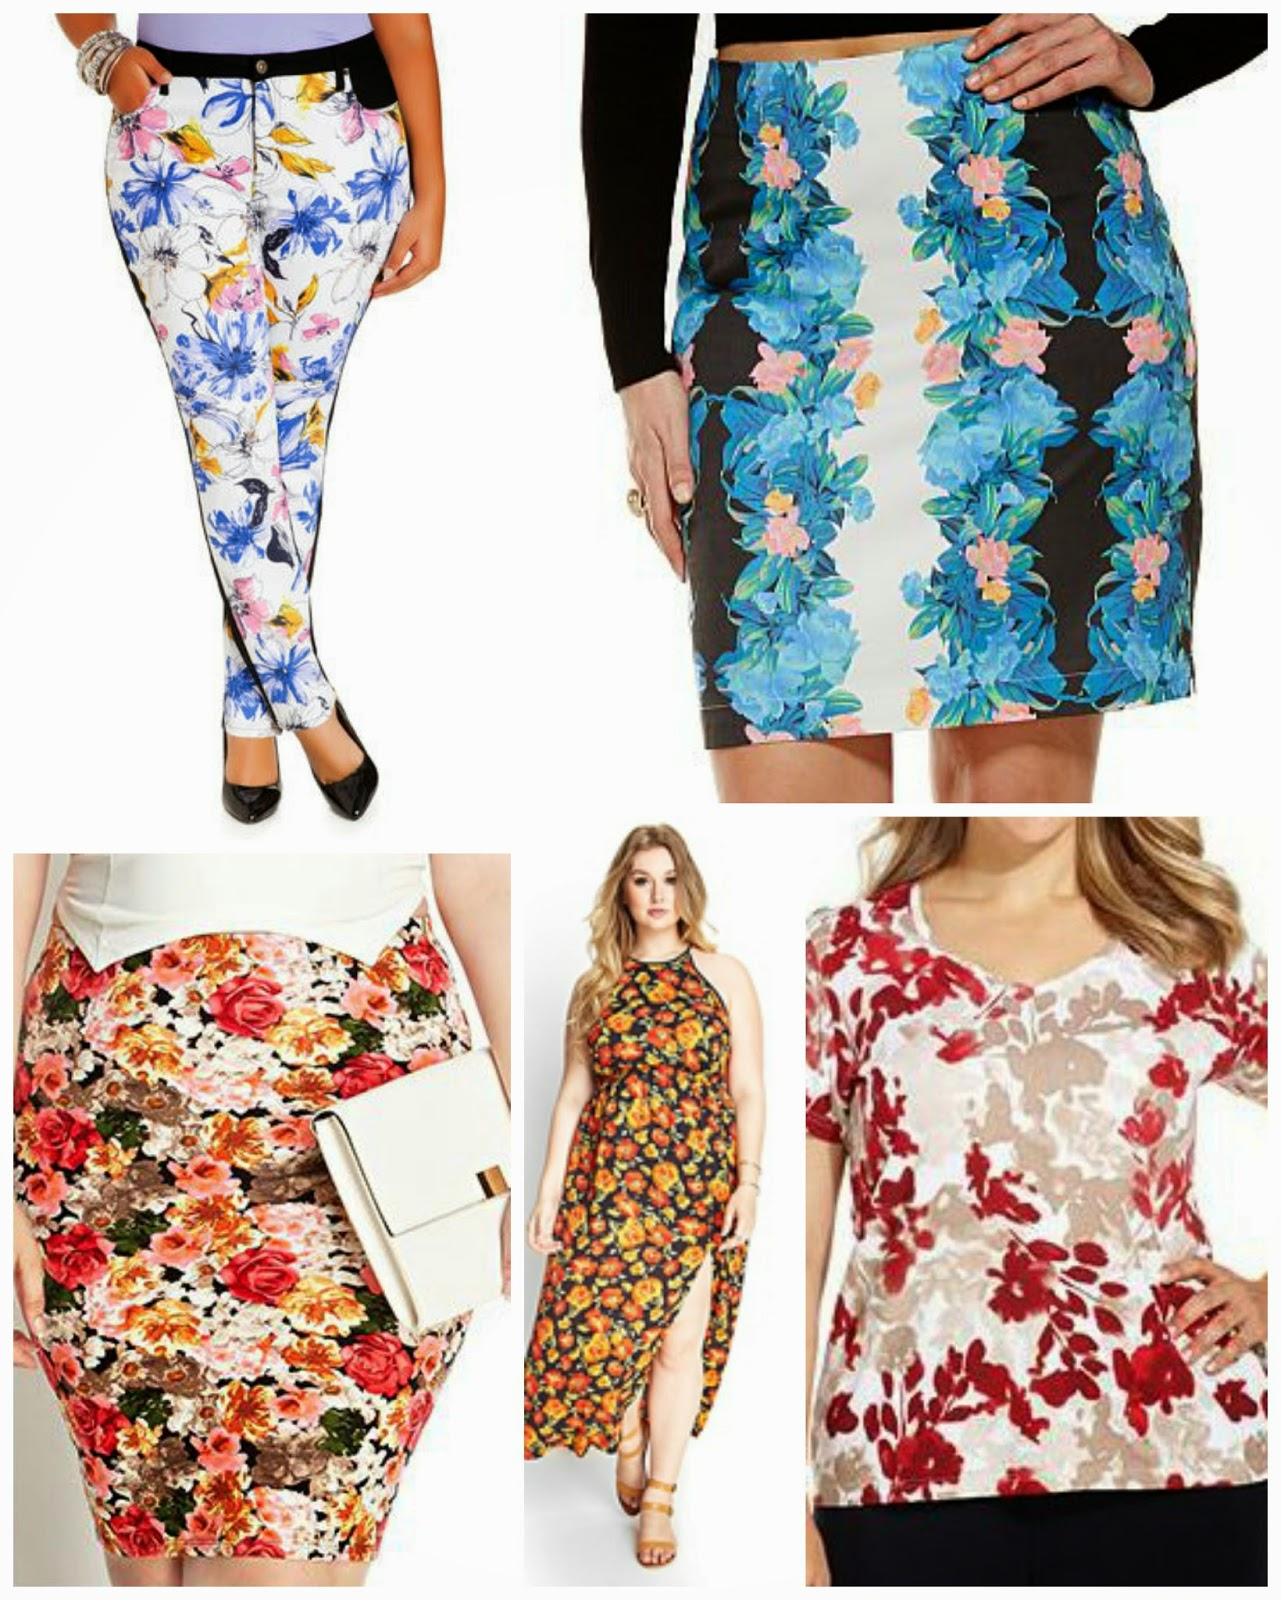 Plus size summer dresses under 20 dollars